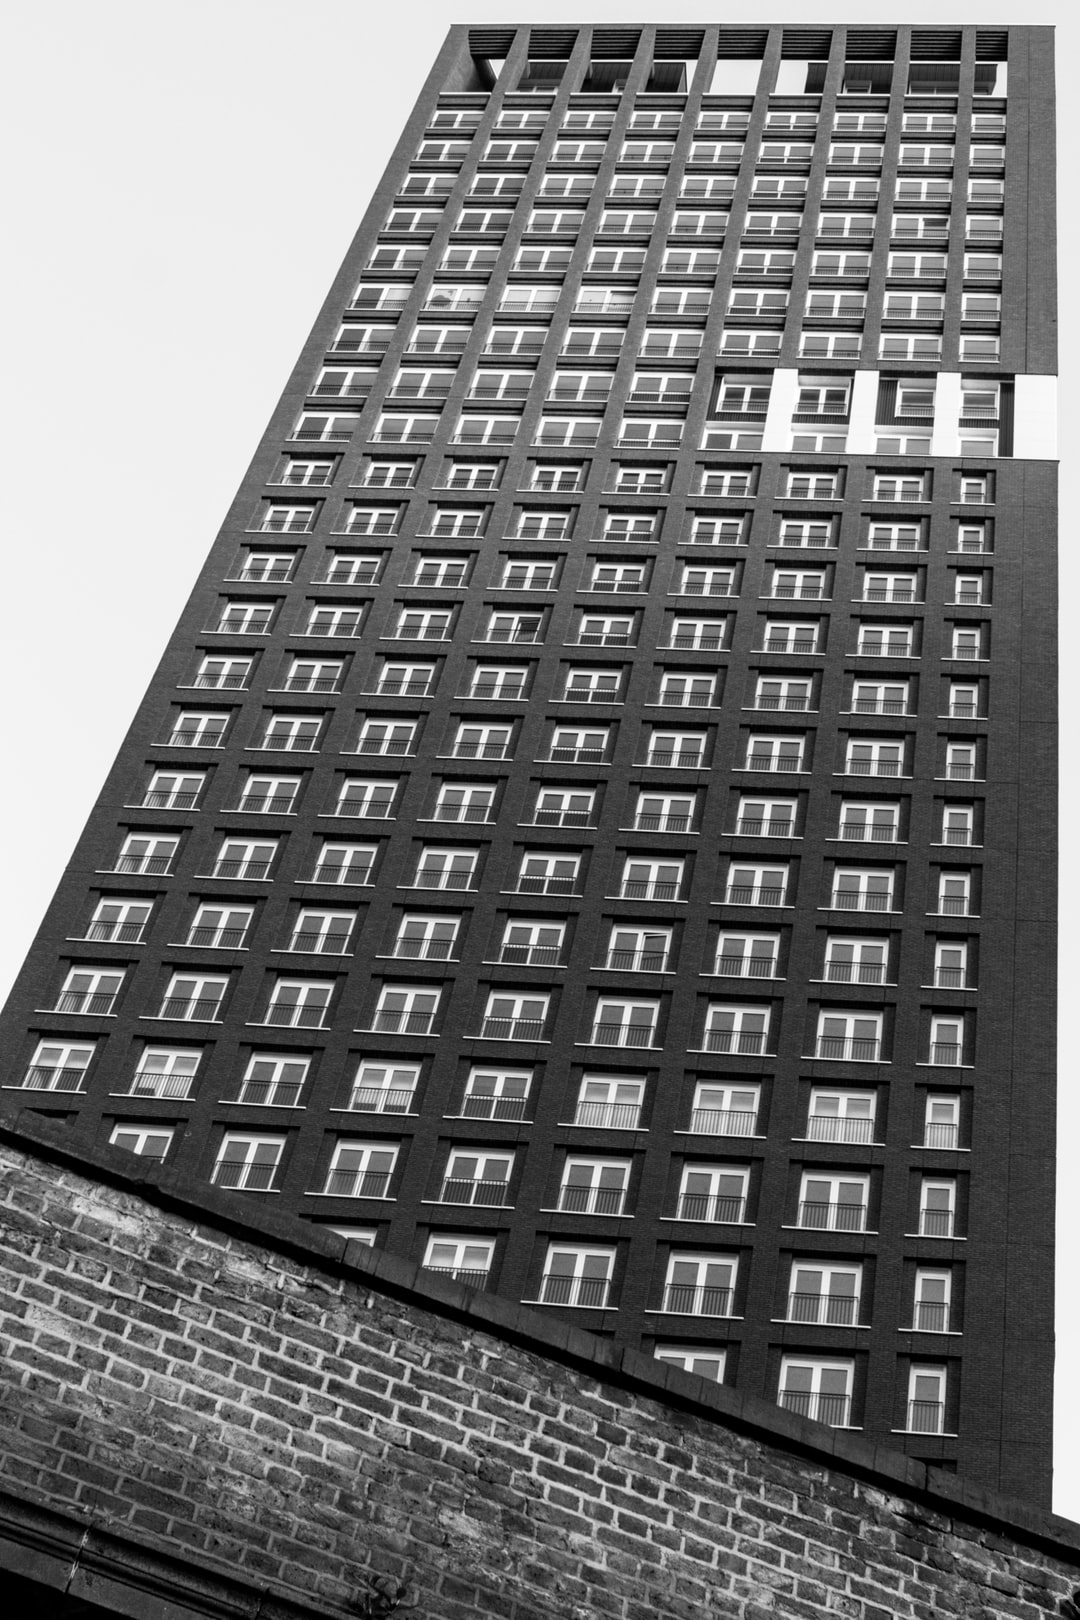 Another new apartment block in Vauxhall, London, UK